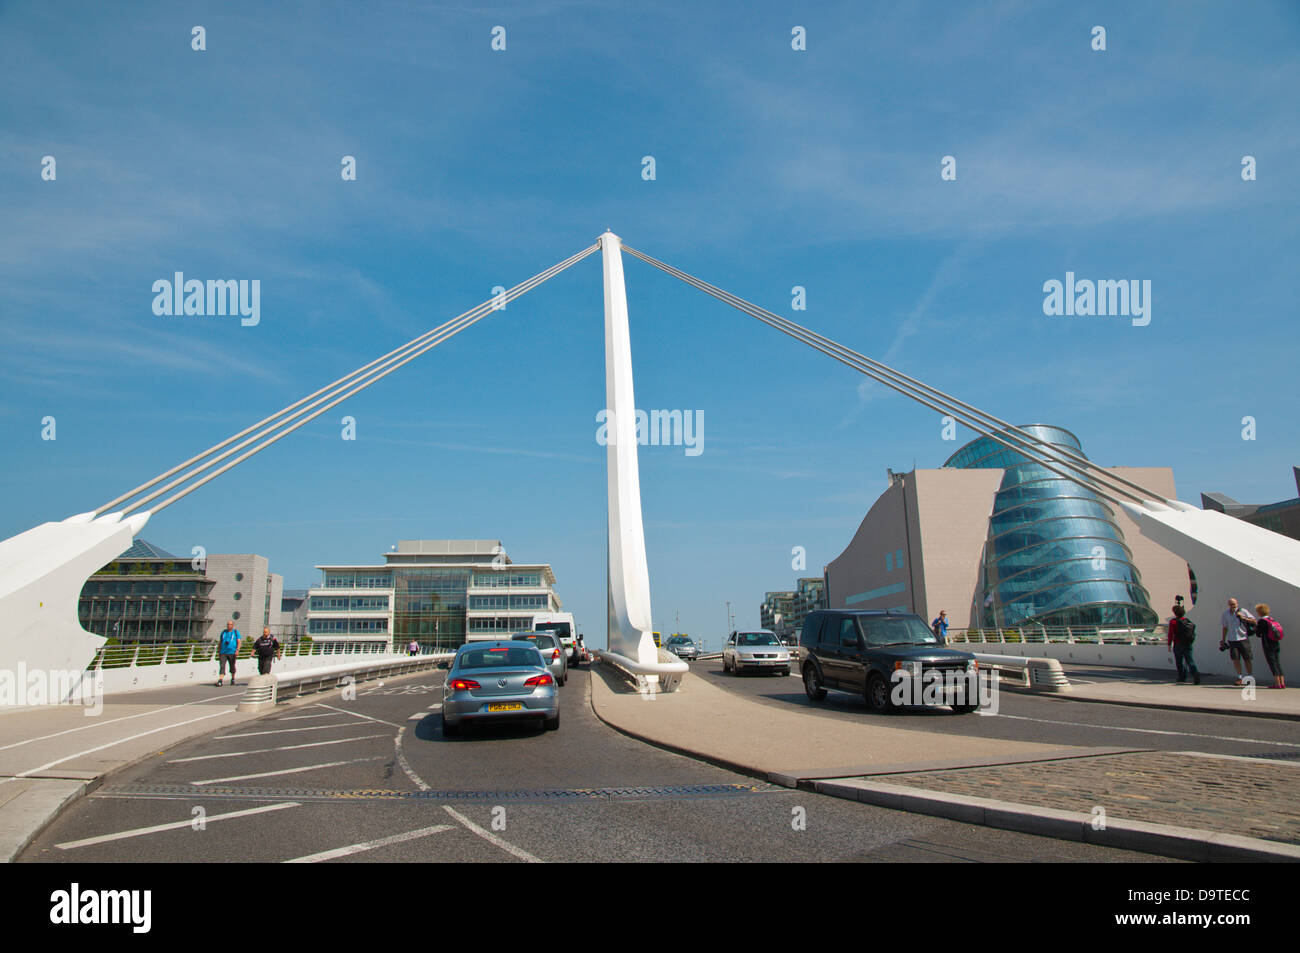 Samuel Beckett bridge (2009) Docklands former harbour area by River Liffey central Dublin Ireland Europe - Stock Image